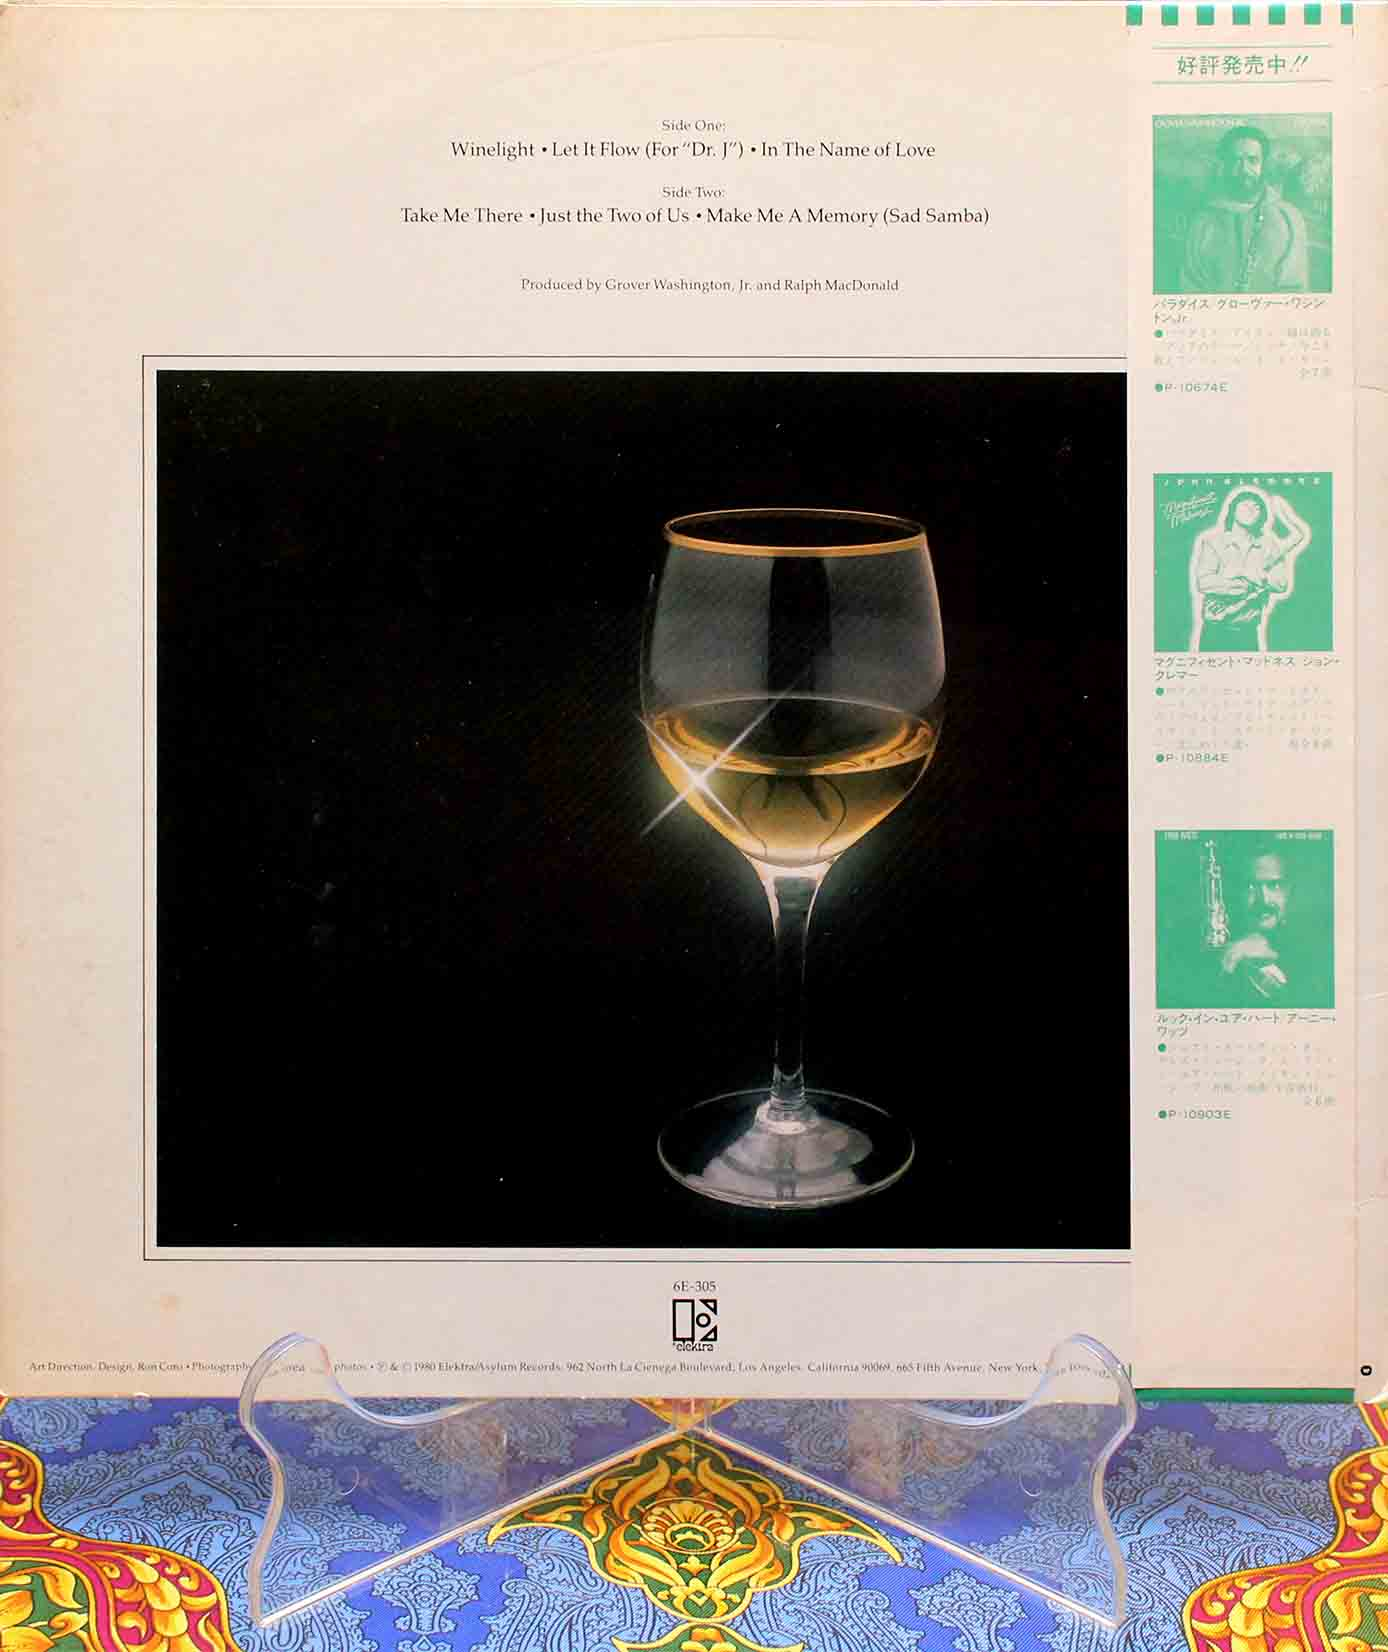 Grover Washington, Jr ‎- Winelight LP 02